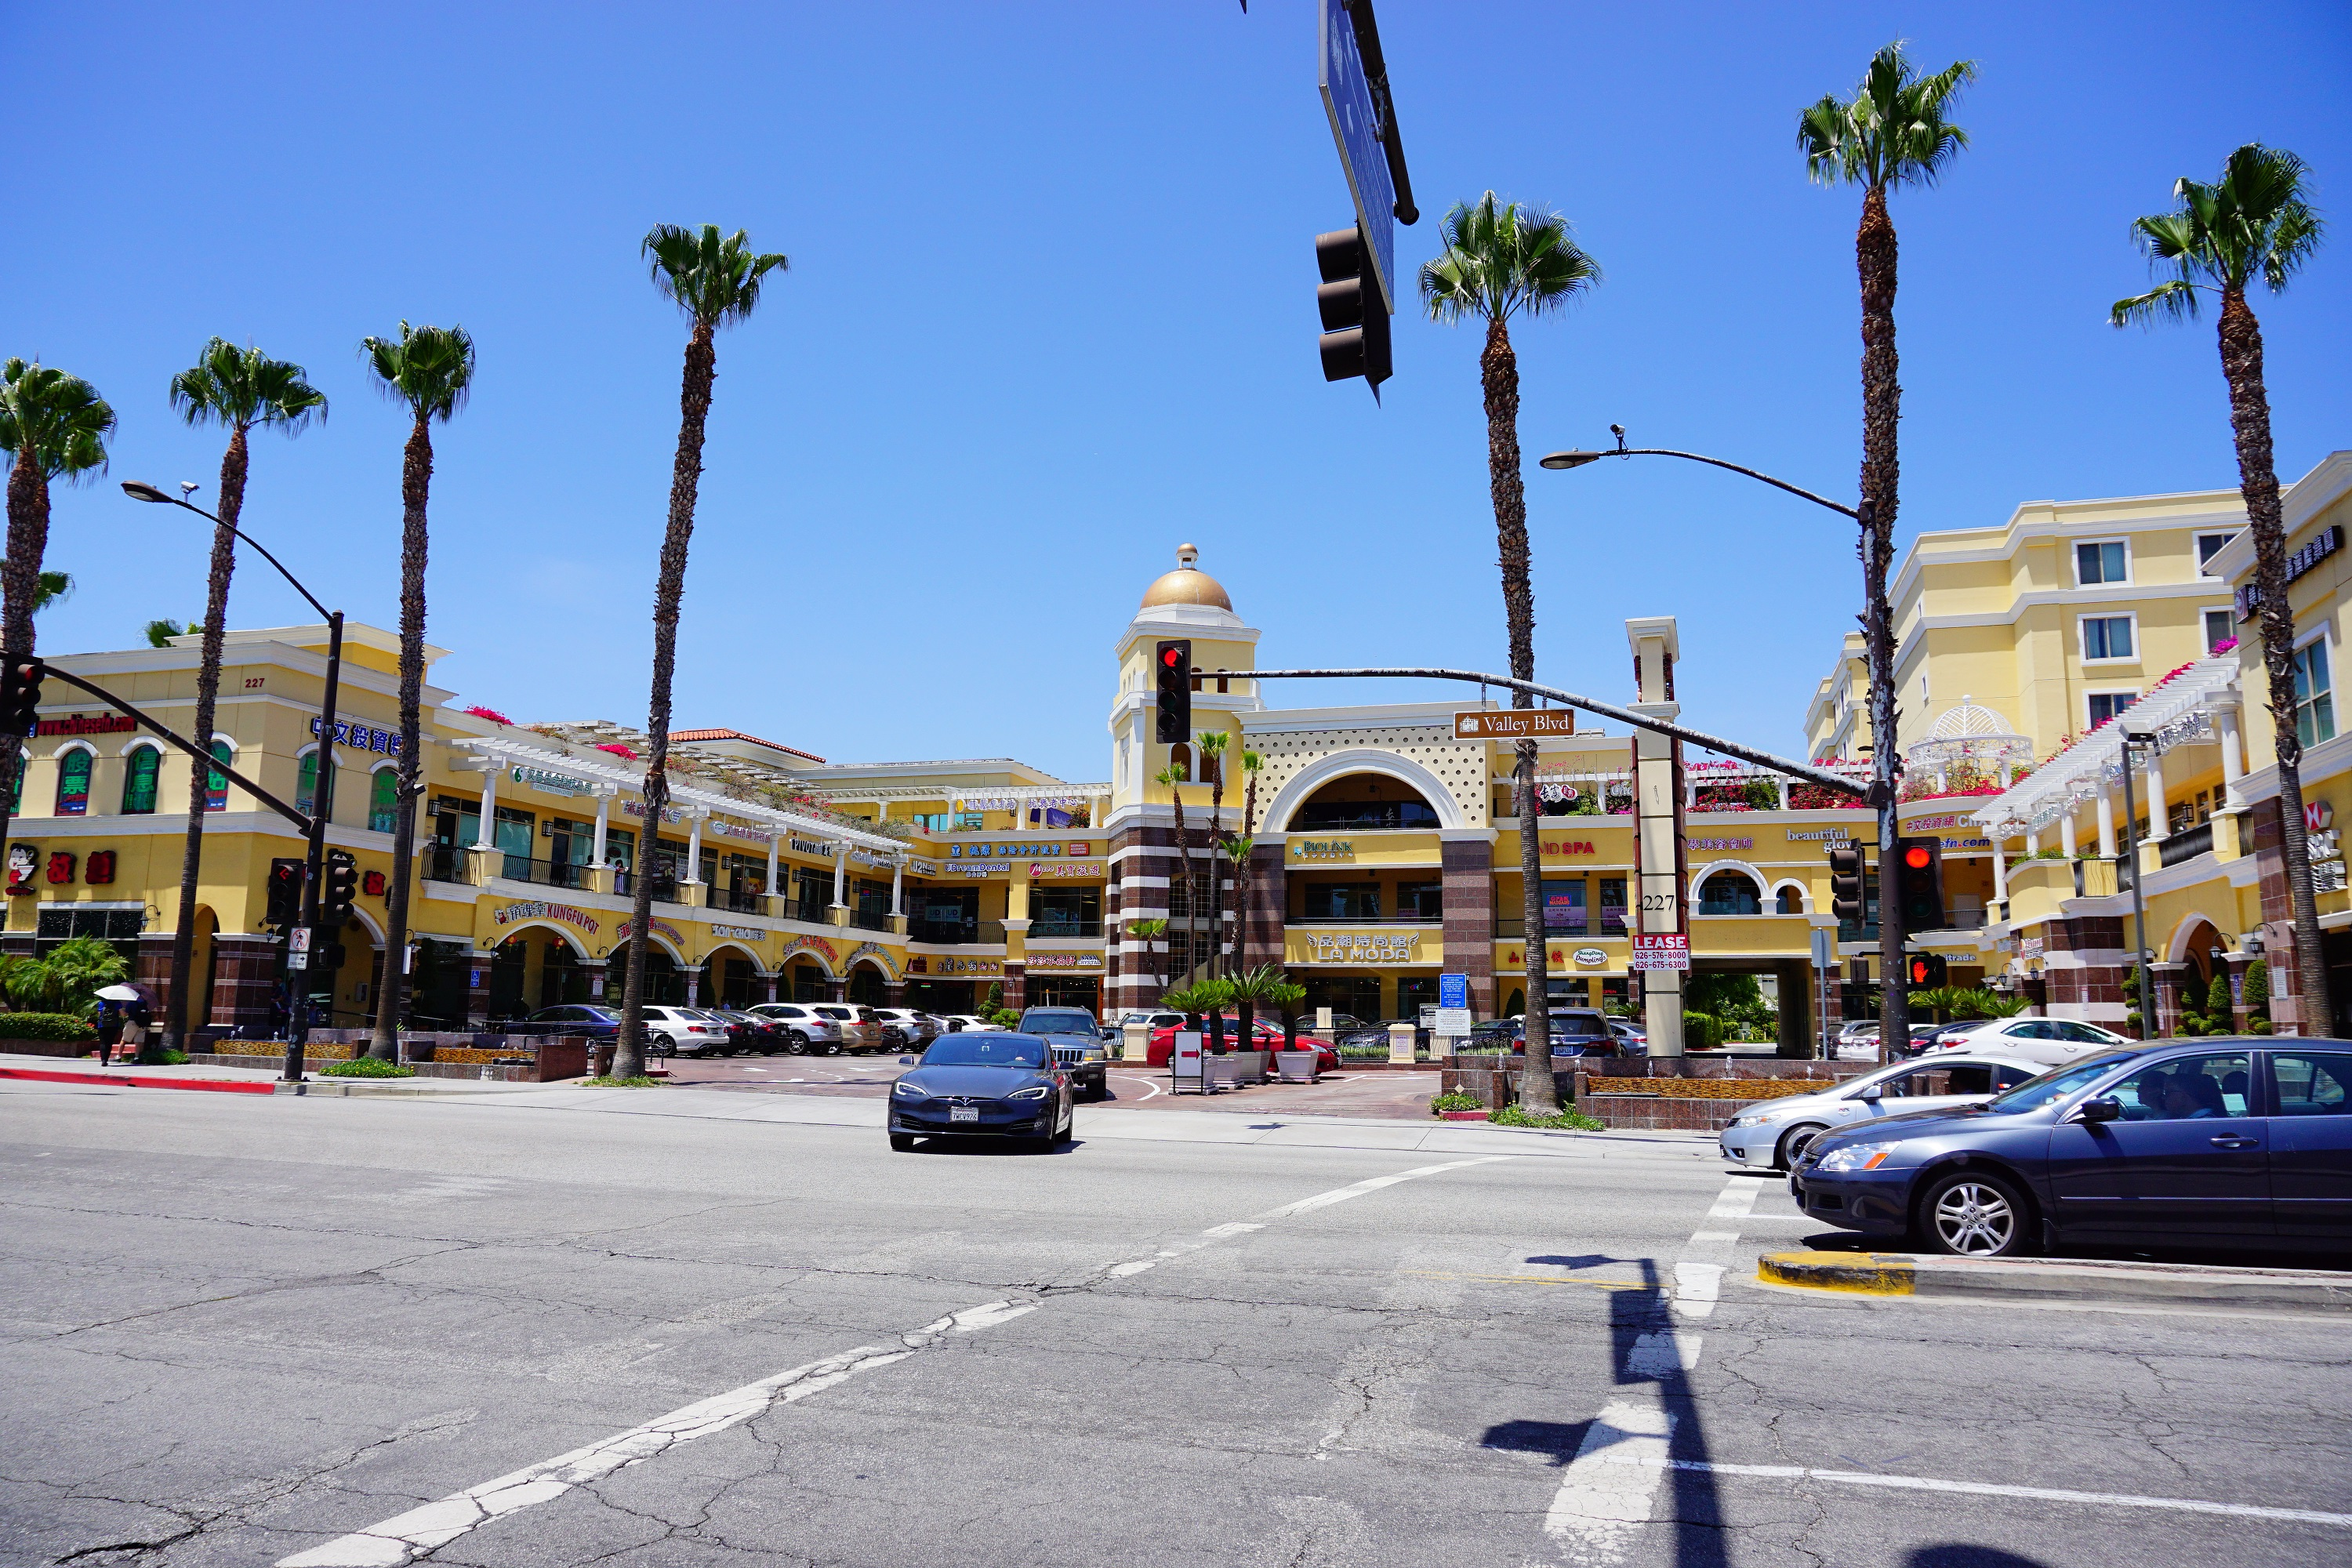 Strip mall with restaurants in San Gabriel, California with palm trees.